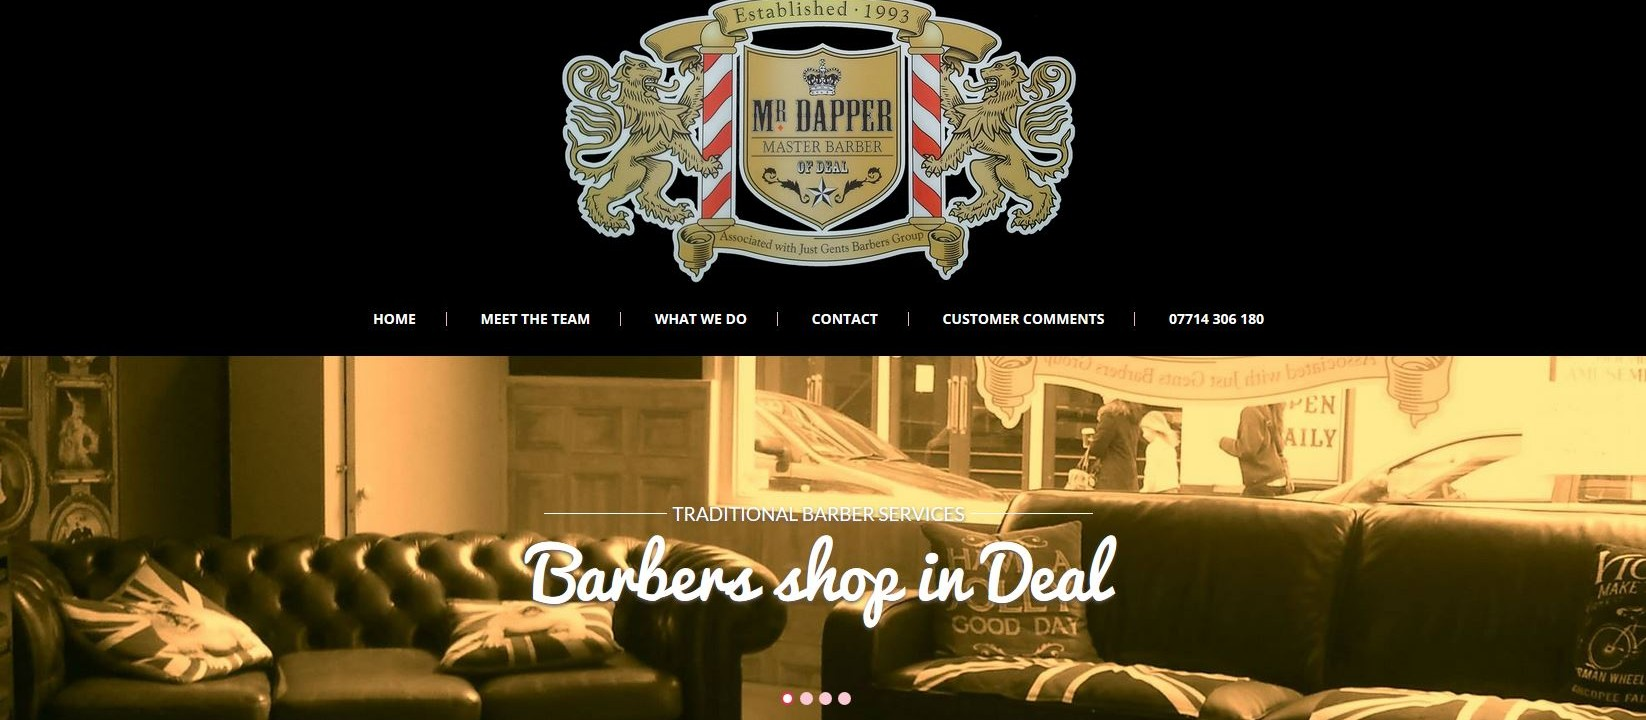 Mr Dapper barbers new website